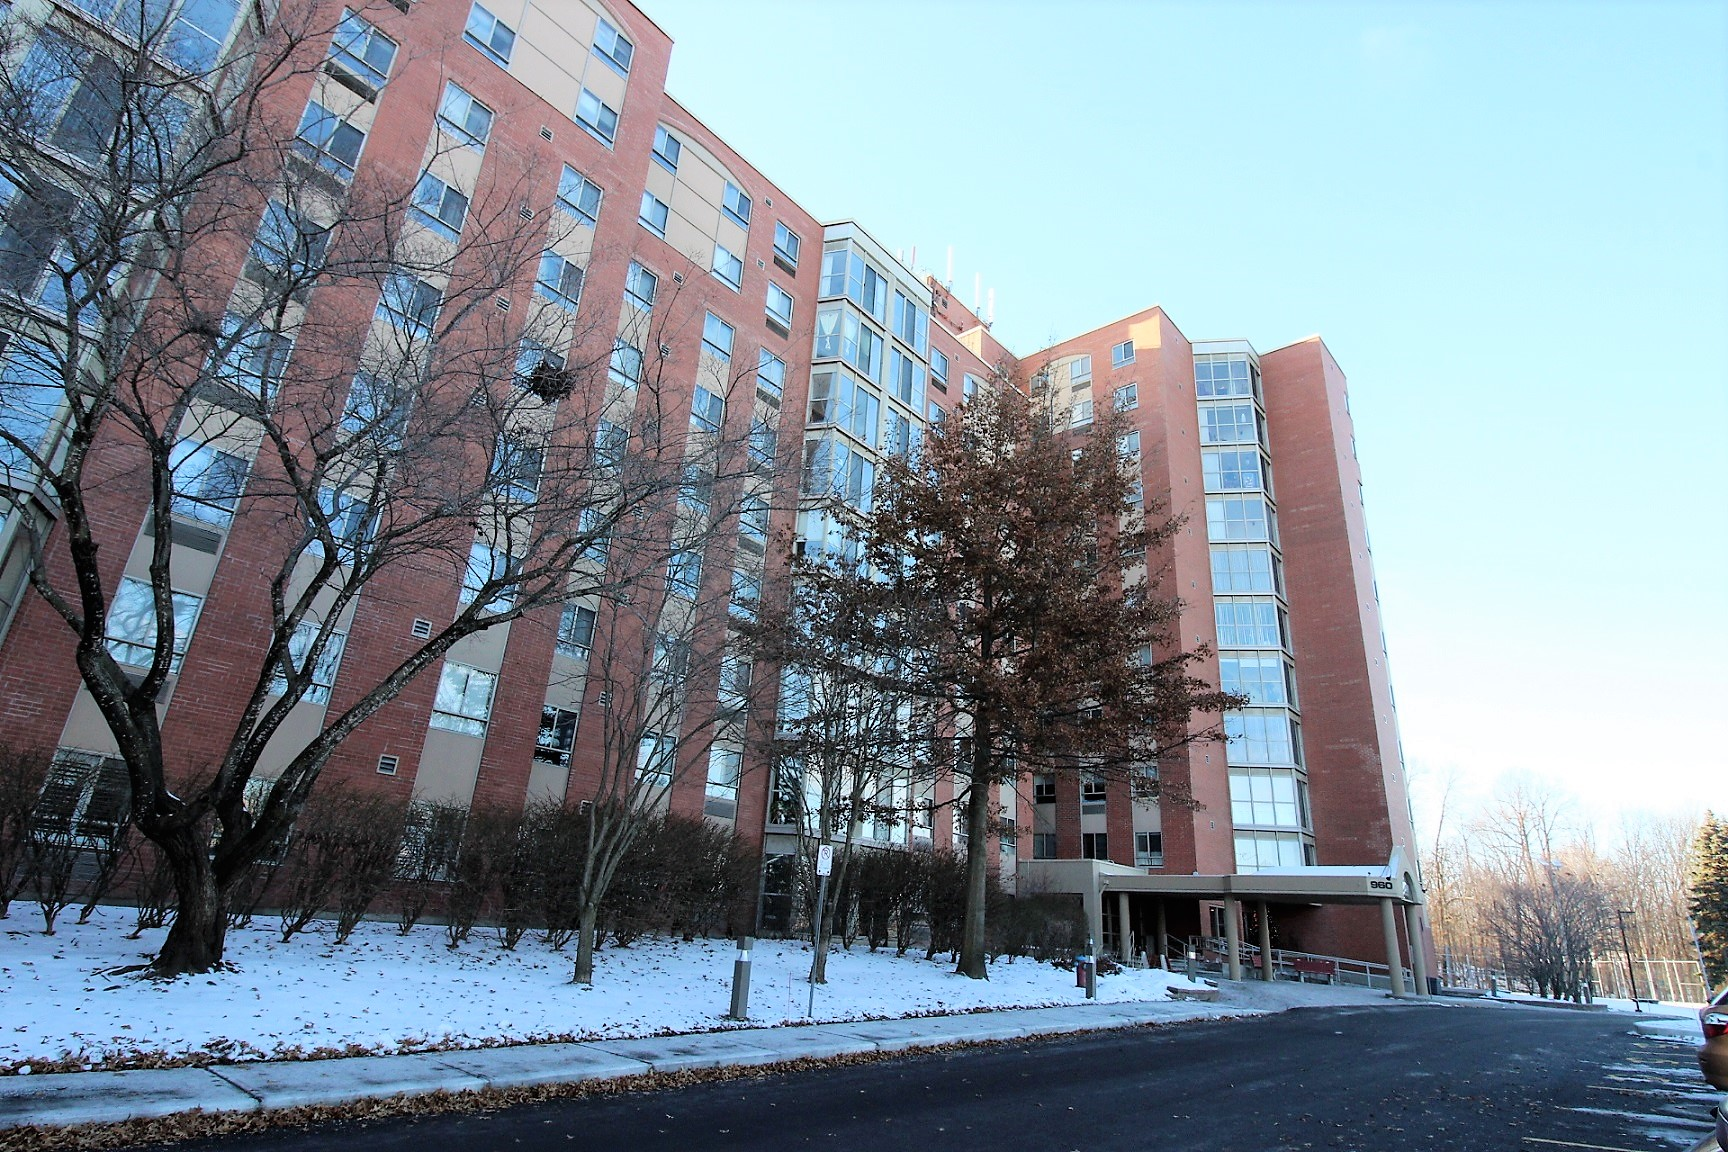 107-960 Teron Rd - 2 Bedroom Condo with Solarium and Loads of Amenities in Beaverbrook Area!